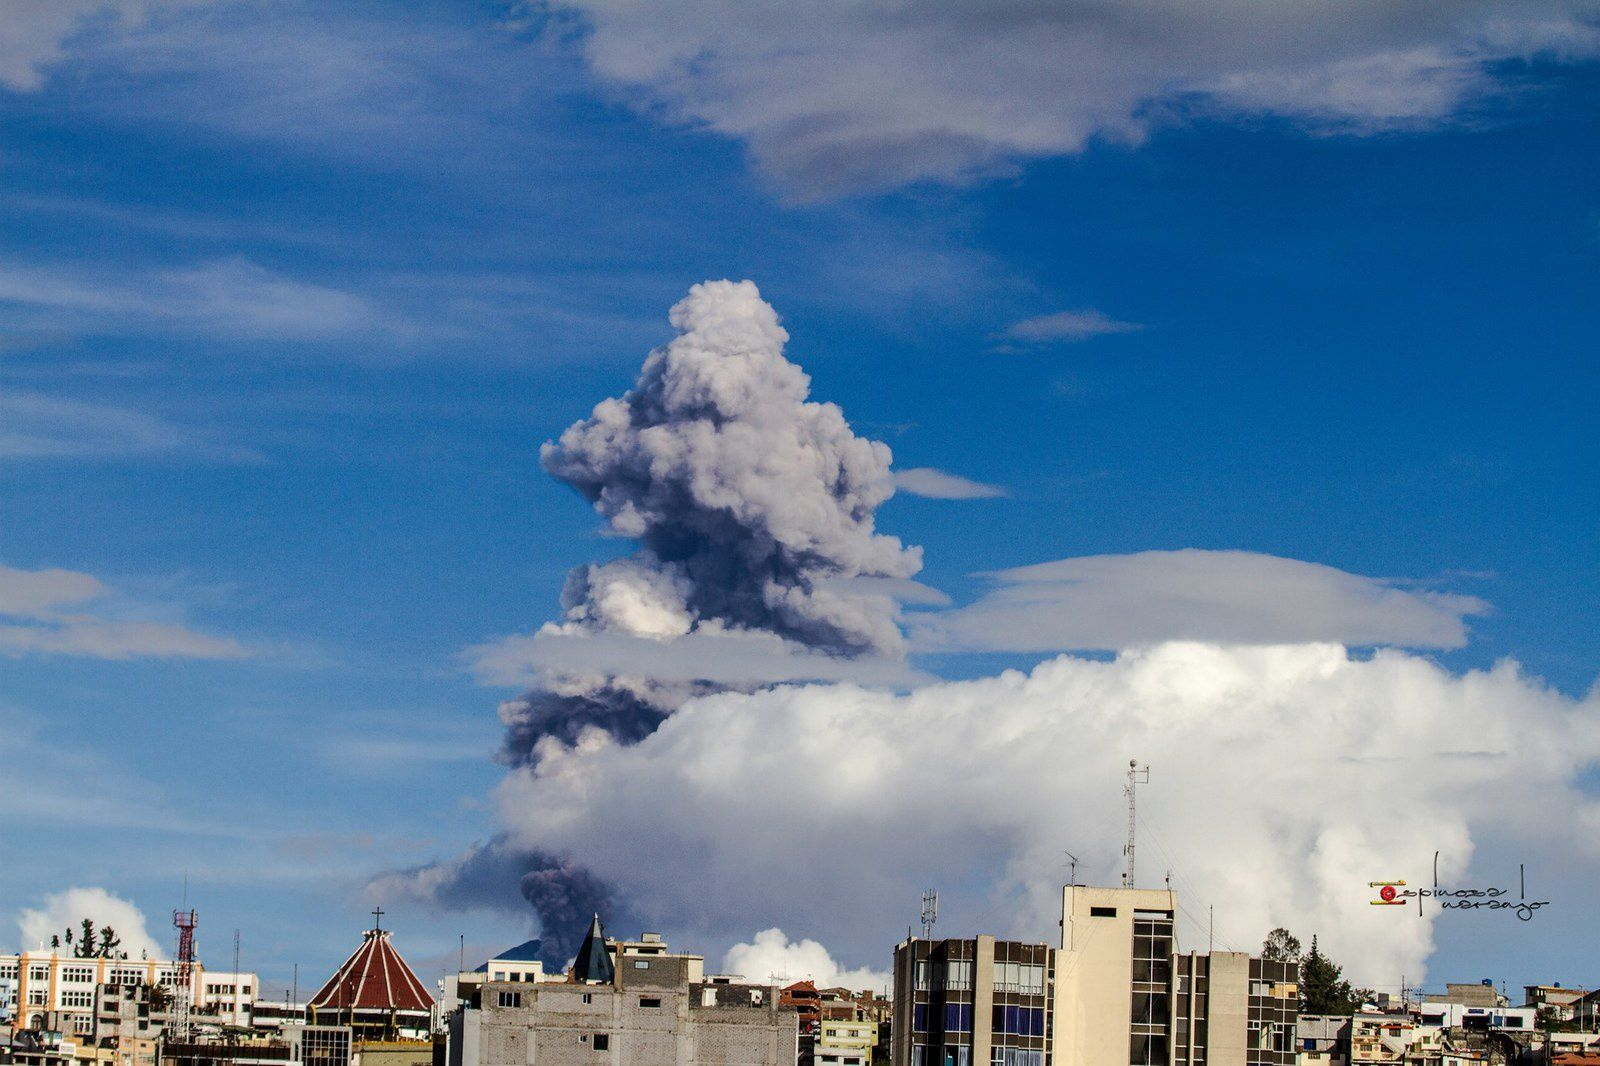 The Tungurahua 15.04.2015 / 4:20 p.m. - photo José Luis Espinosa-Naranjo